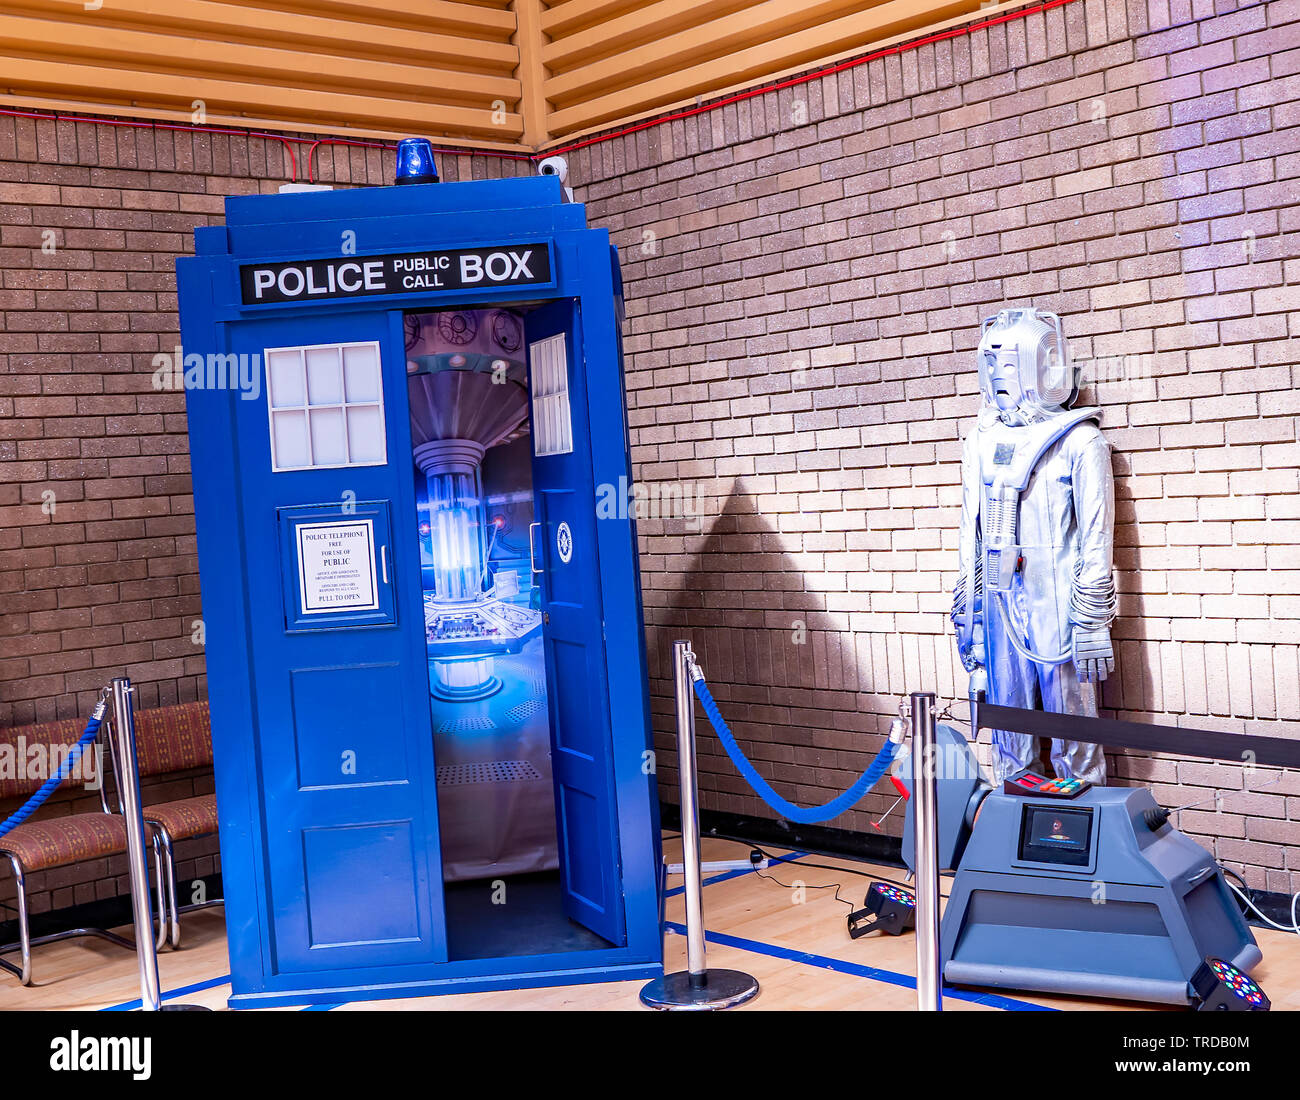 Great Yarmouth Comicon 2019 – The Tardis and an alien suit film props from the hit TV show Dr Who on exhibit at the Comicon event - Stock Image